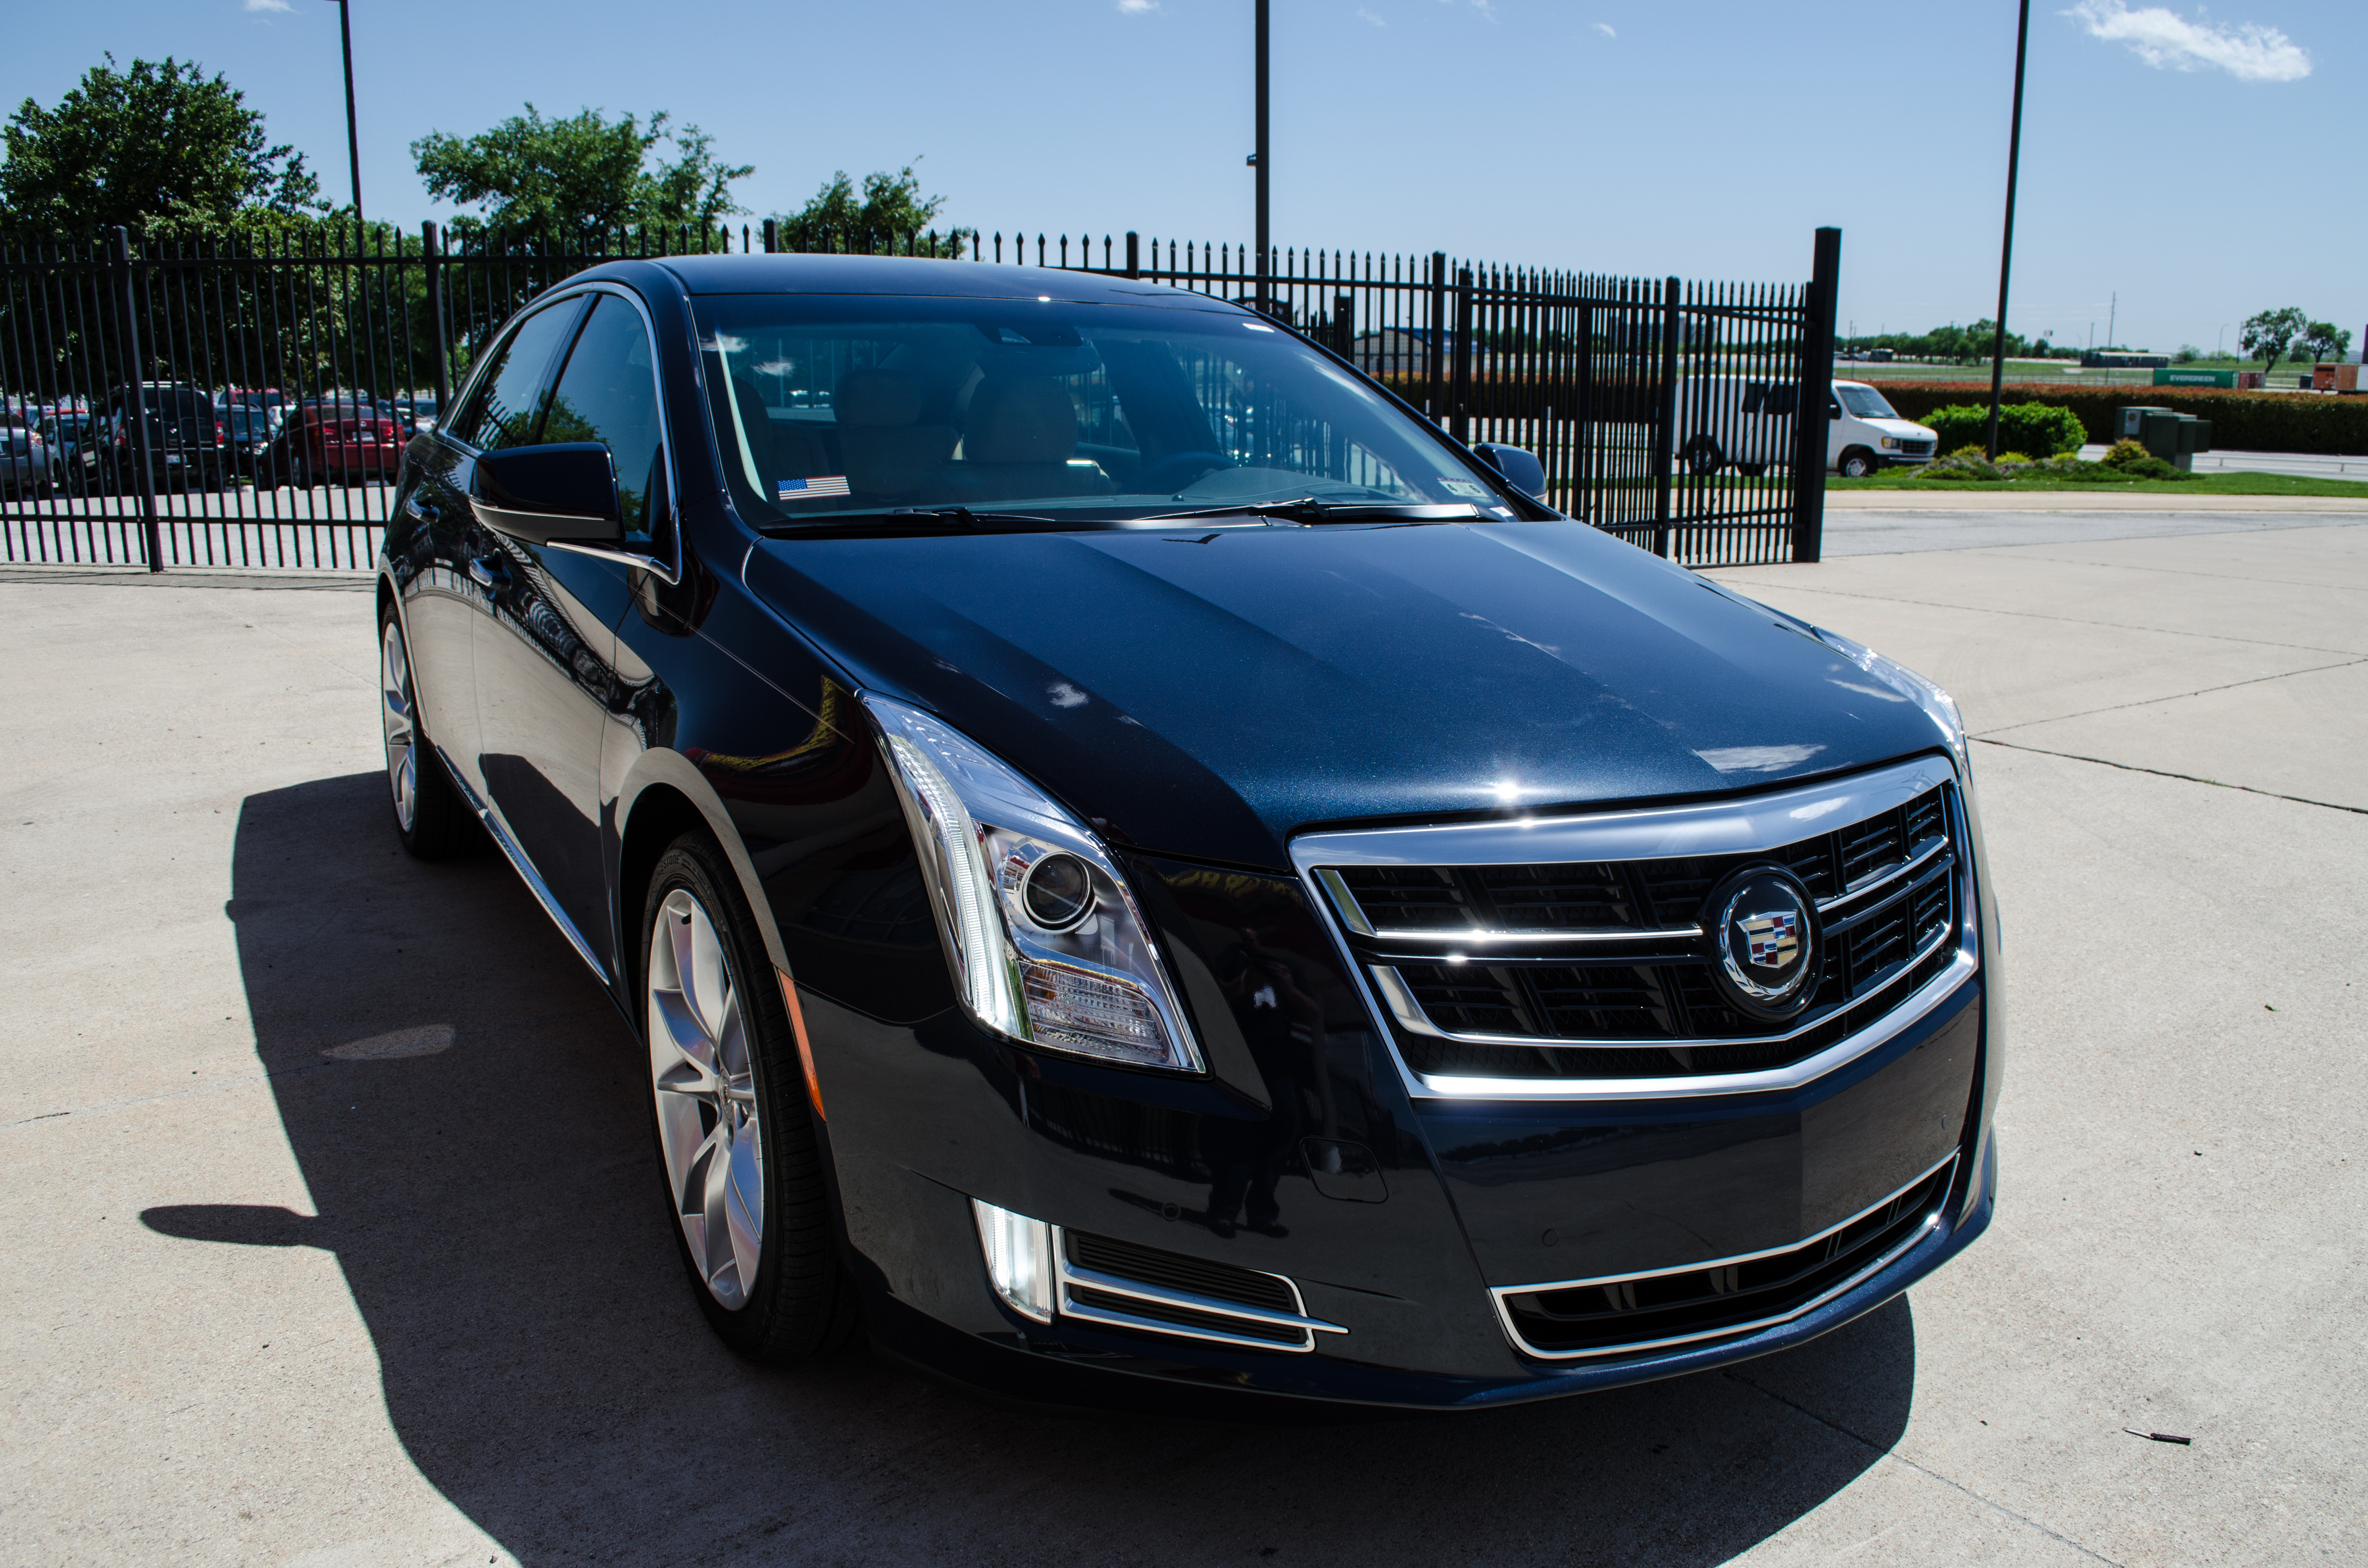 research v cadillac photos silver specs gray forest new xts pricing mn lake trims gallery